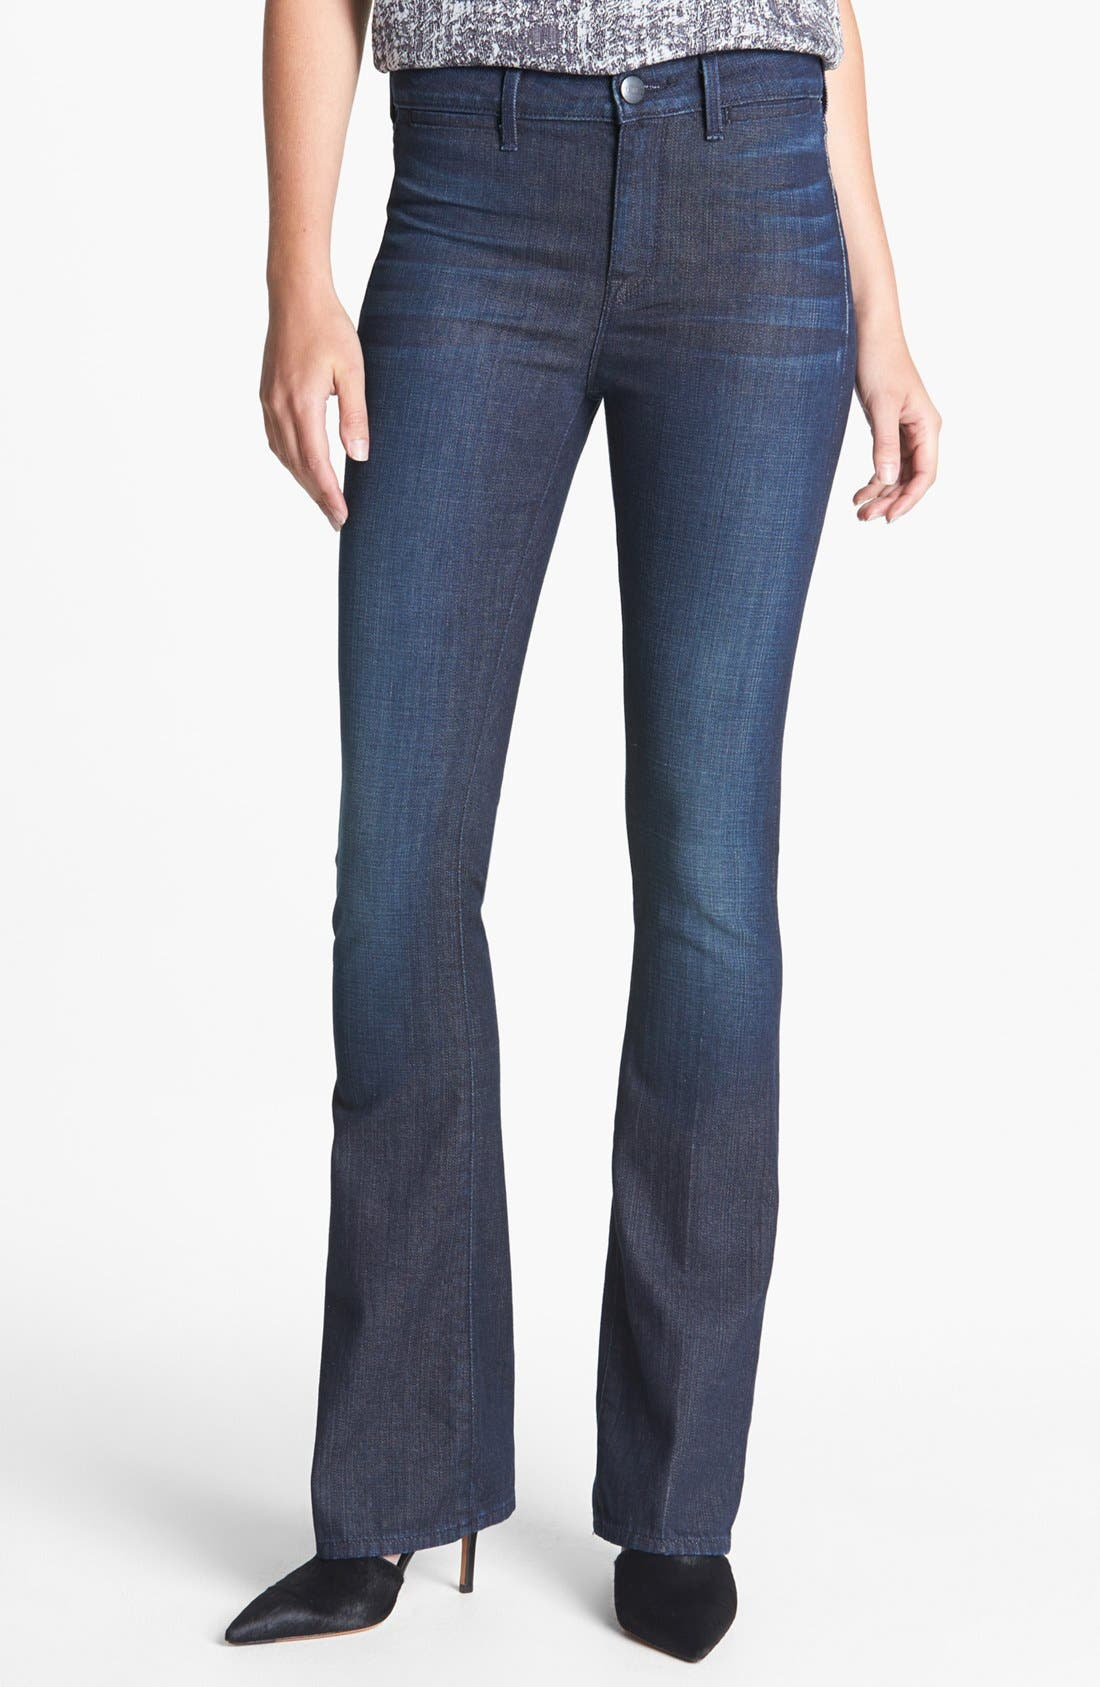 Alternate Image 1 Selected - Vince 'Taylor' High Rise Bootcut Stretch Jeans